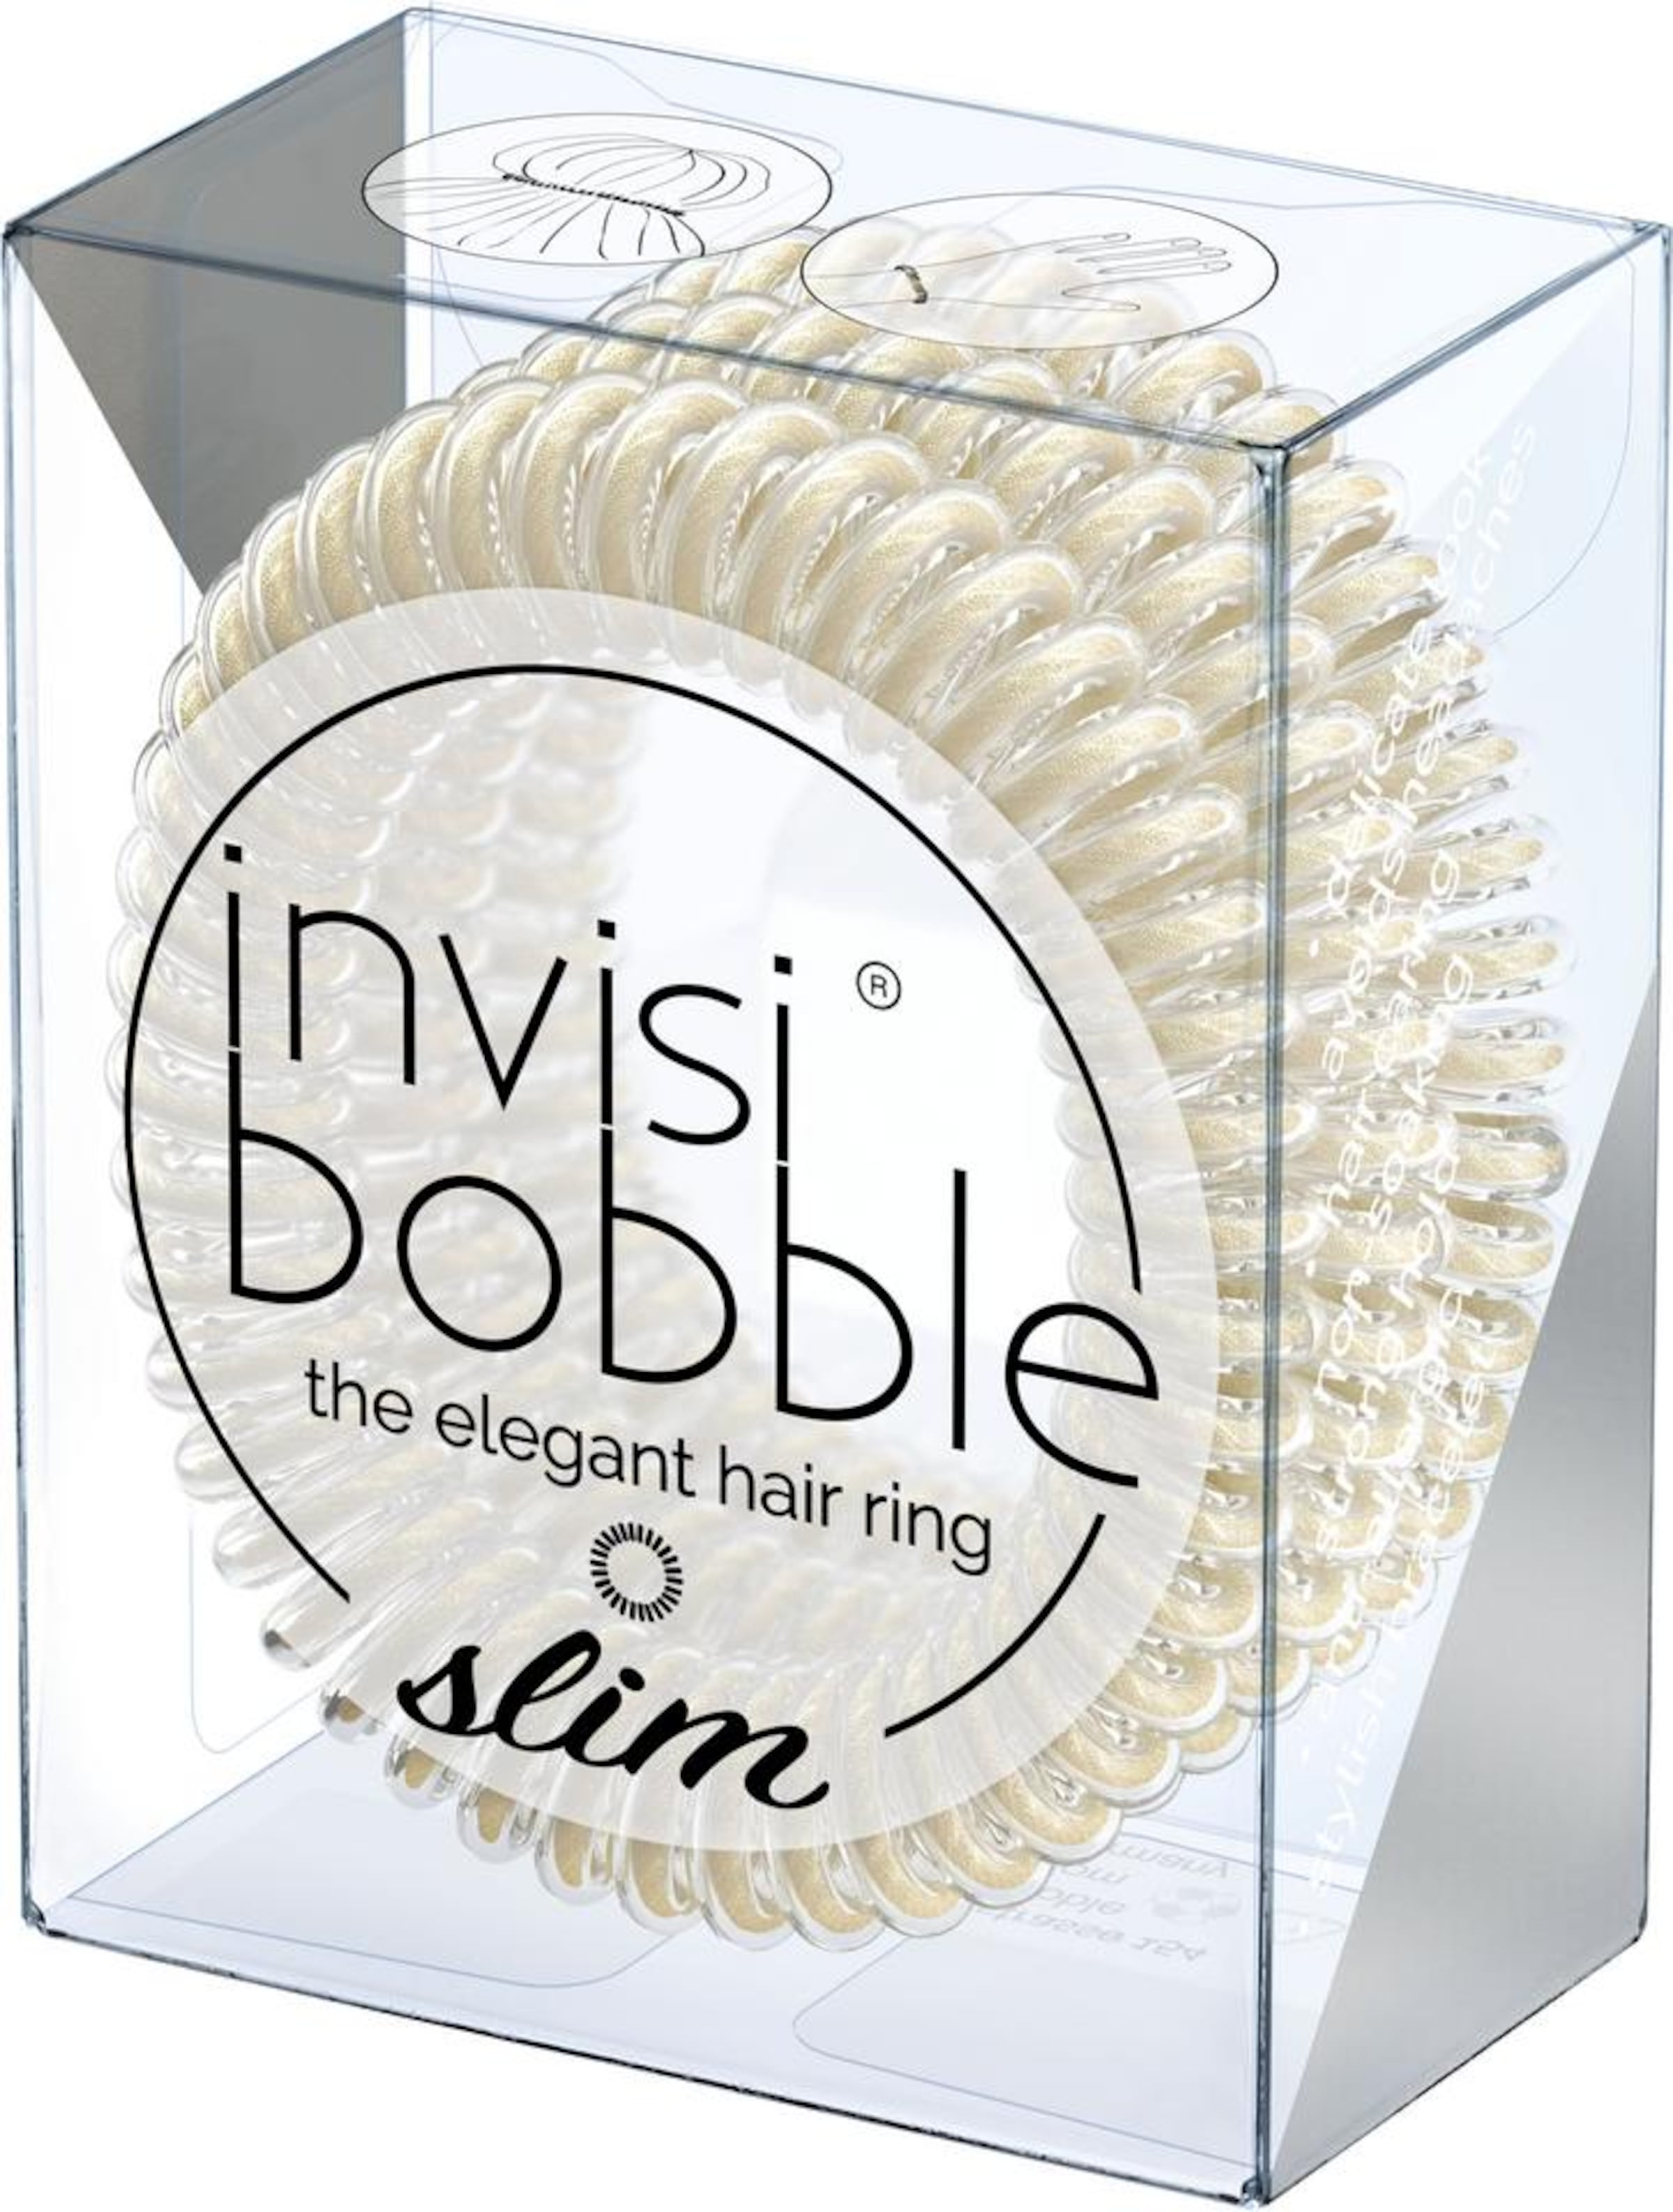 Haargummi Haargummi 'slim' In Haargummi Mischfarben 'slim' Invisibobble In Mischfarben Invisibobble Invisibobble In 'slim' gyfvYb76